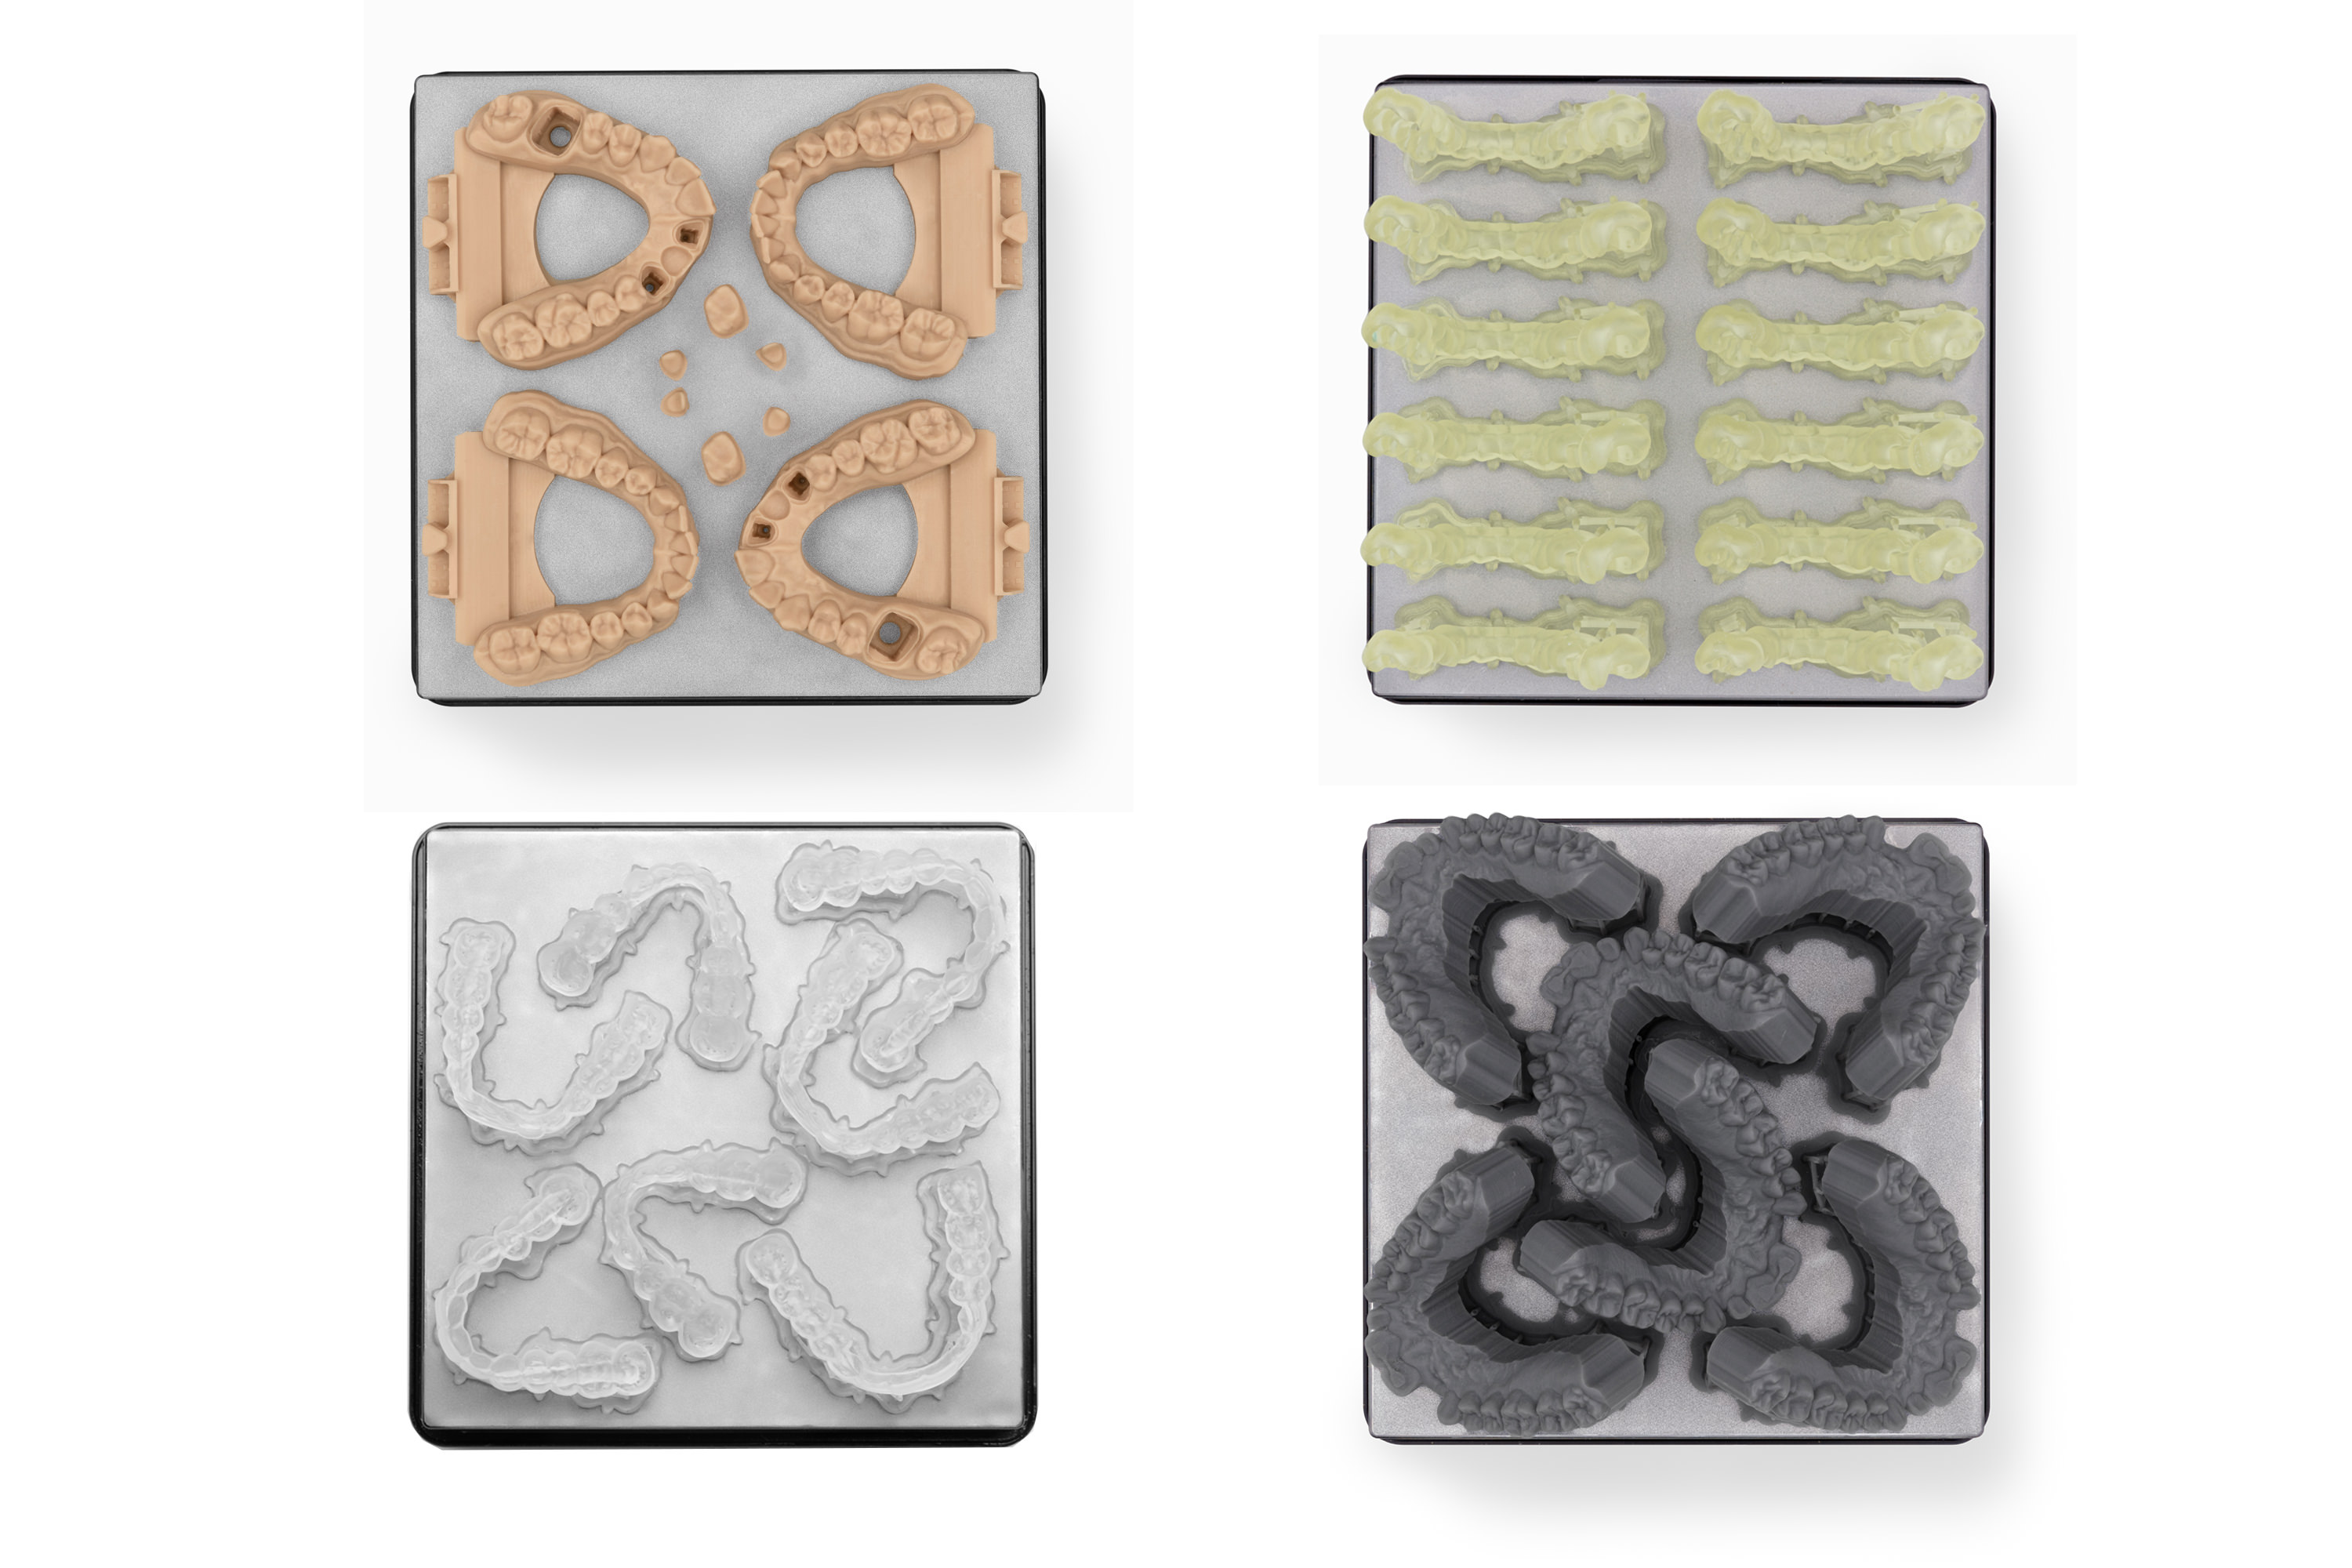 SLA printers offer large build volumes and a wide range of materials. From top left to bottom right: crown and bridge models, surgical guides, splints, and orthodontic models.